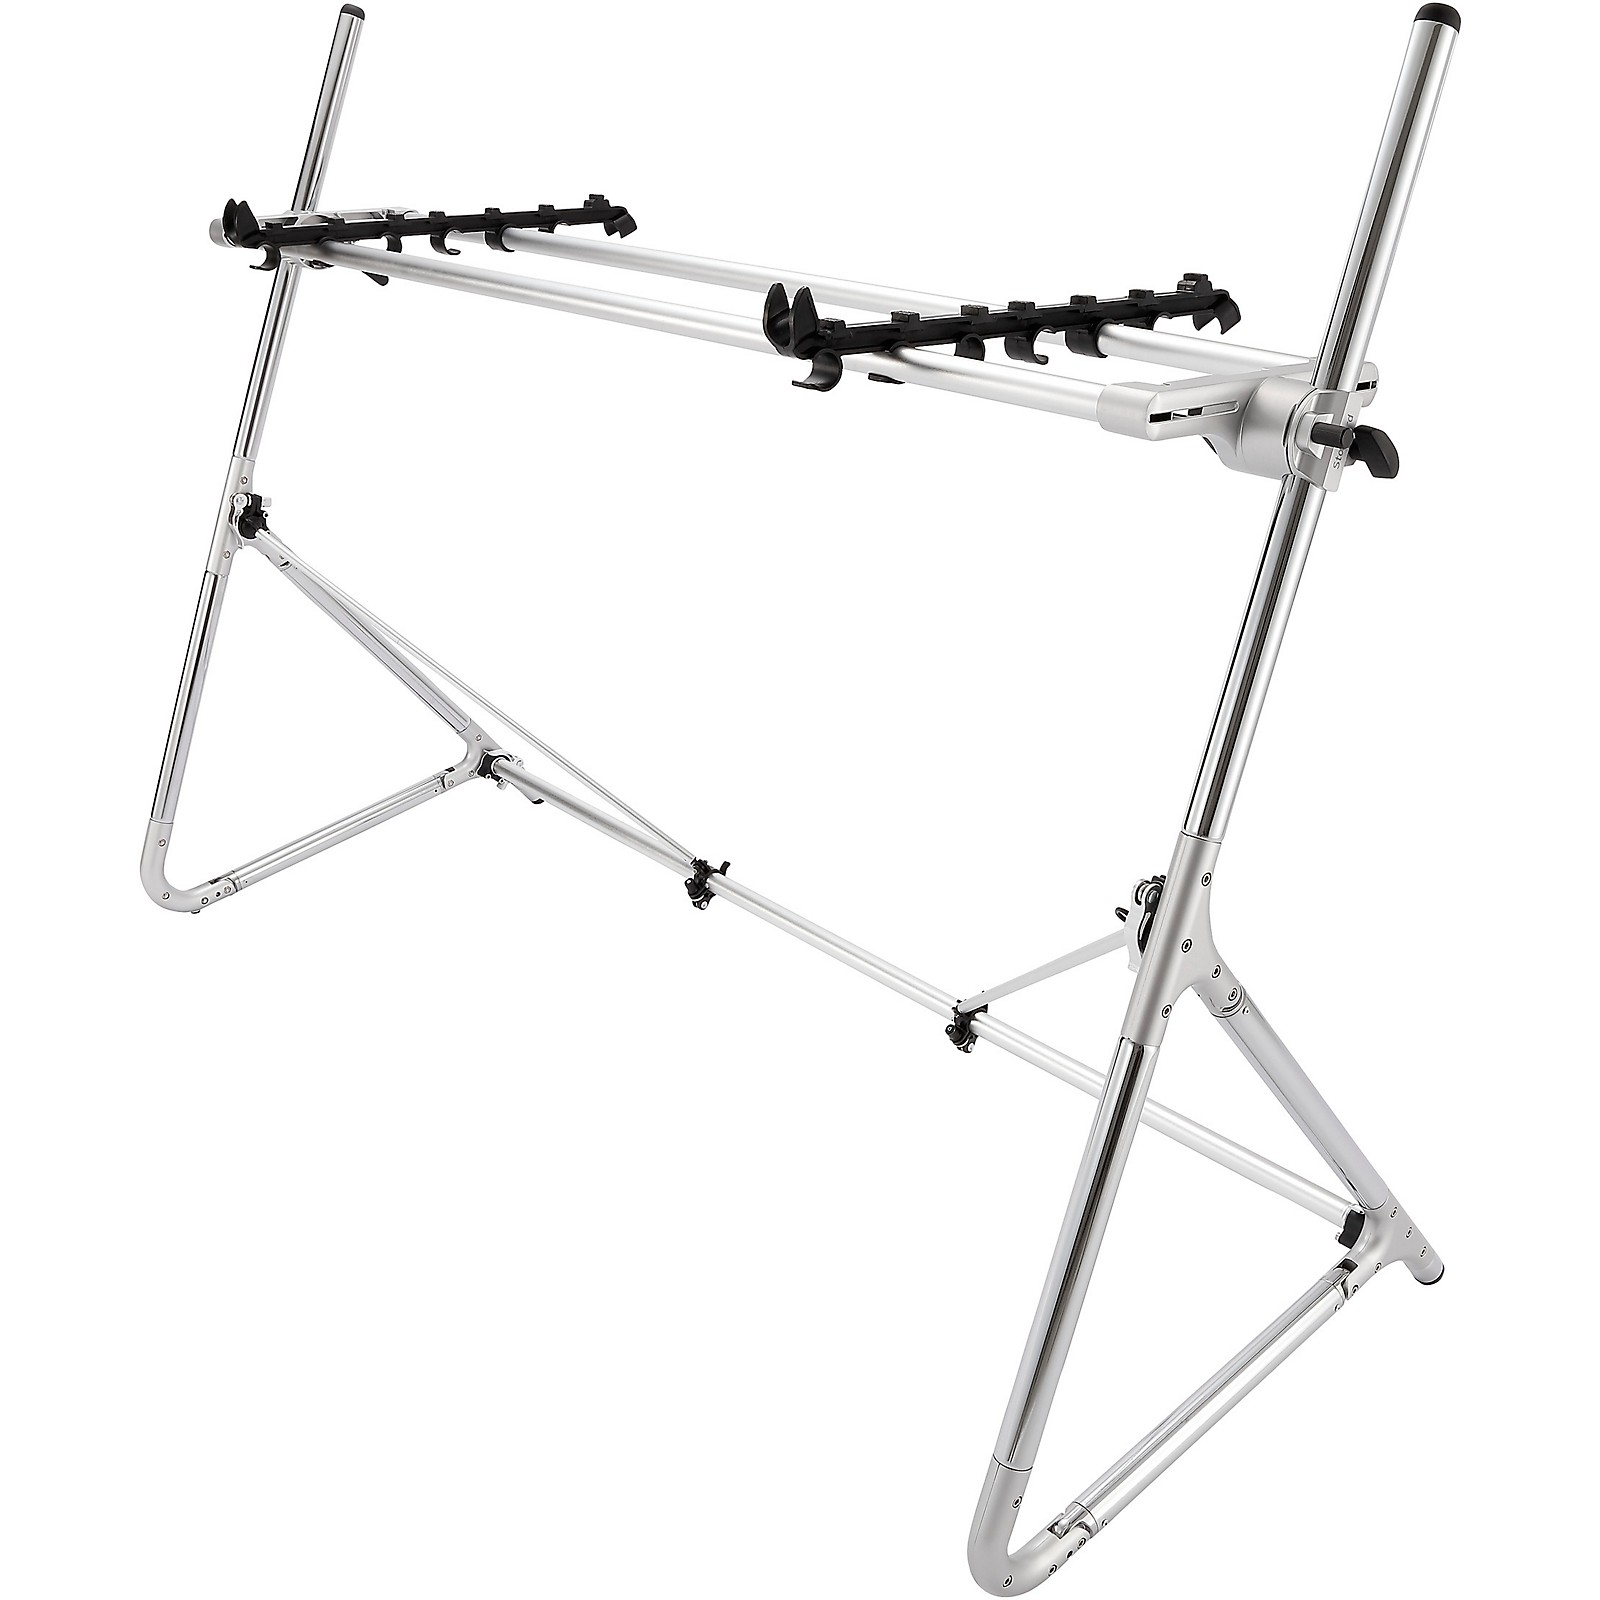 Sequenz Standard L-SV Model Large Stand - Silver